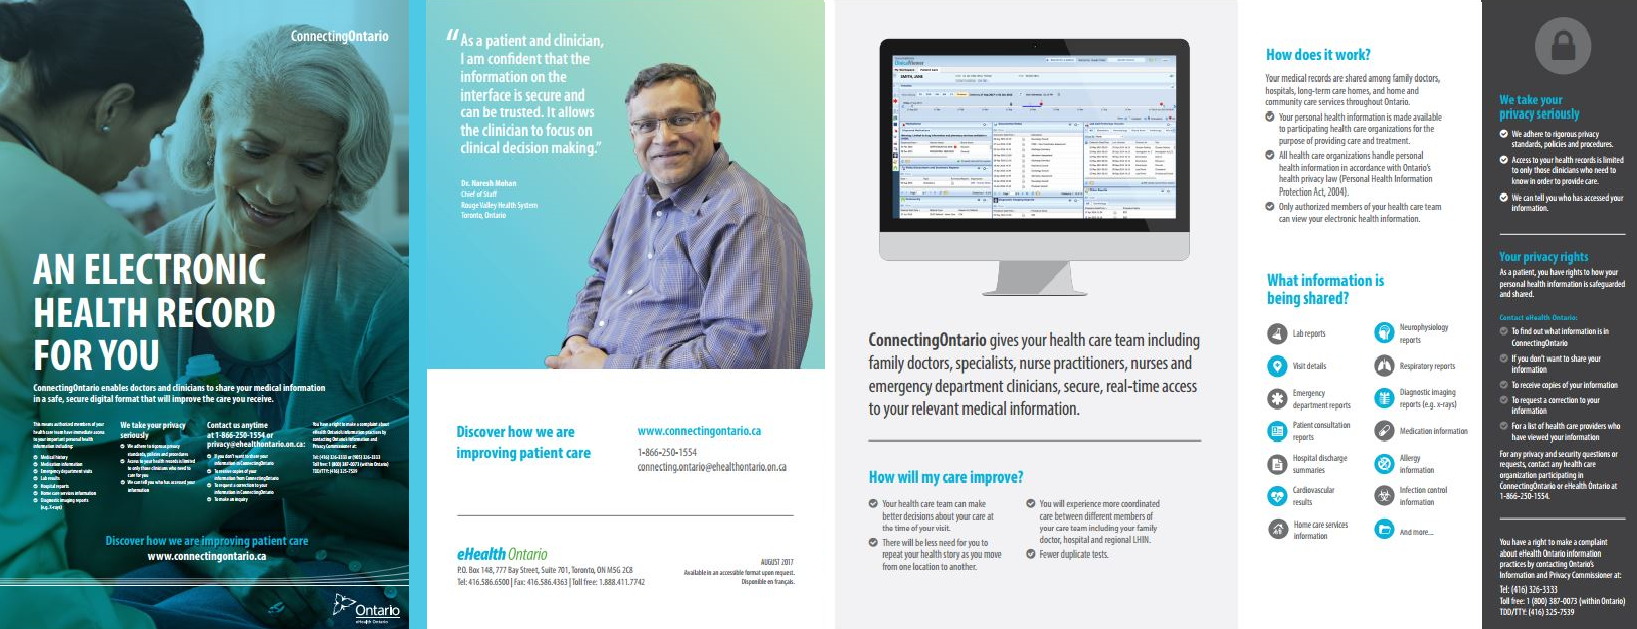 connectingontario an electronic health record for you emery